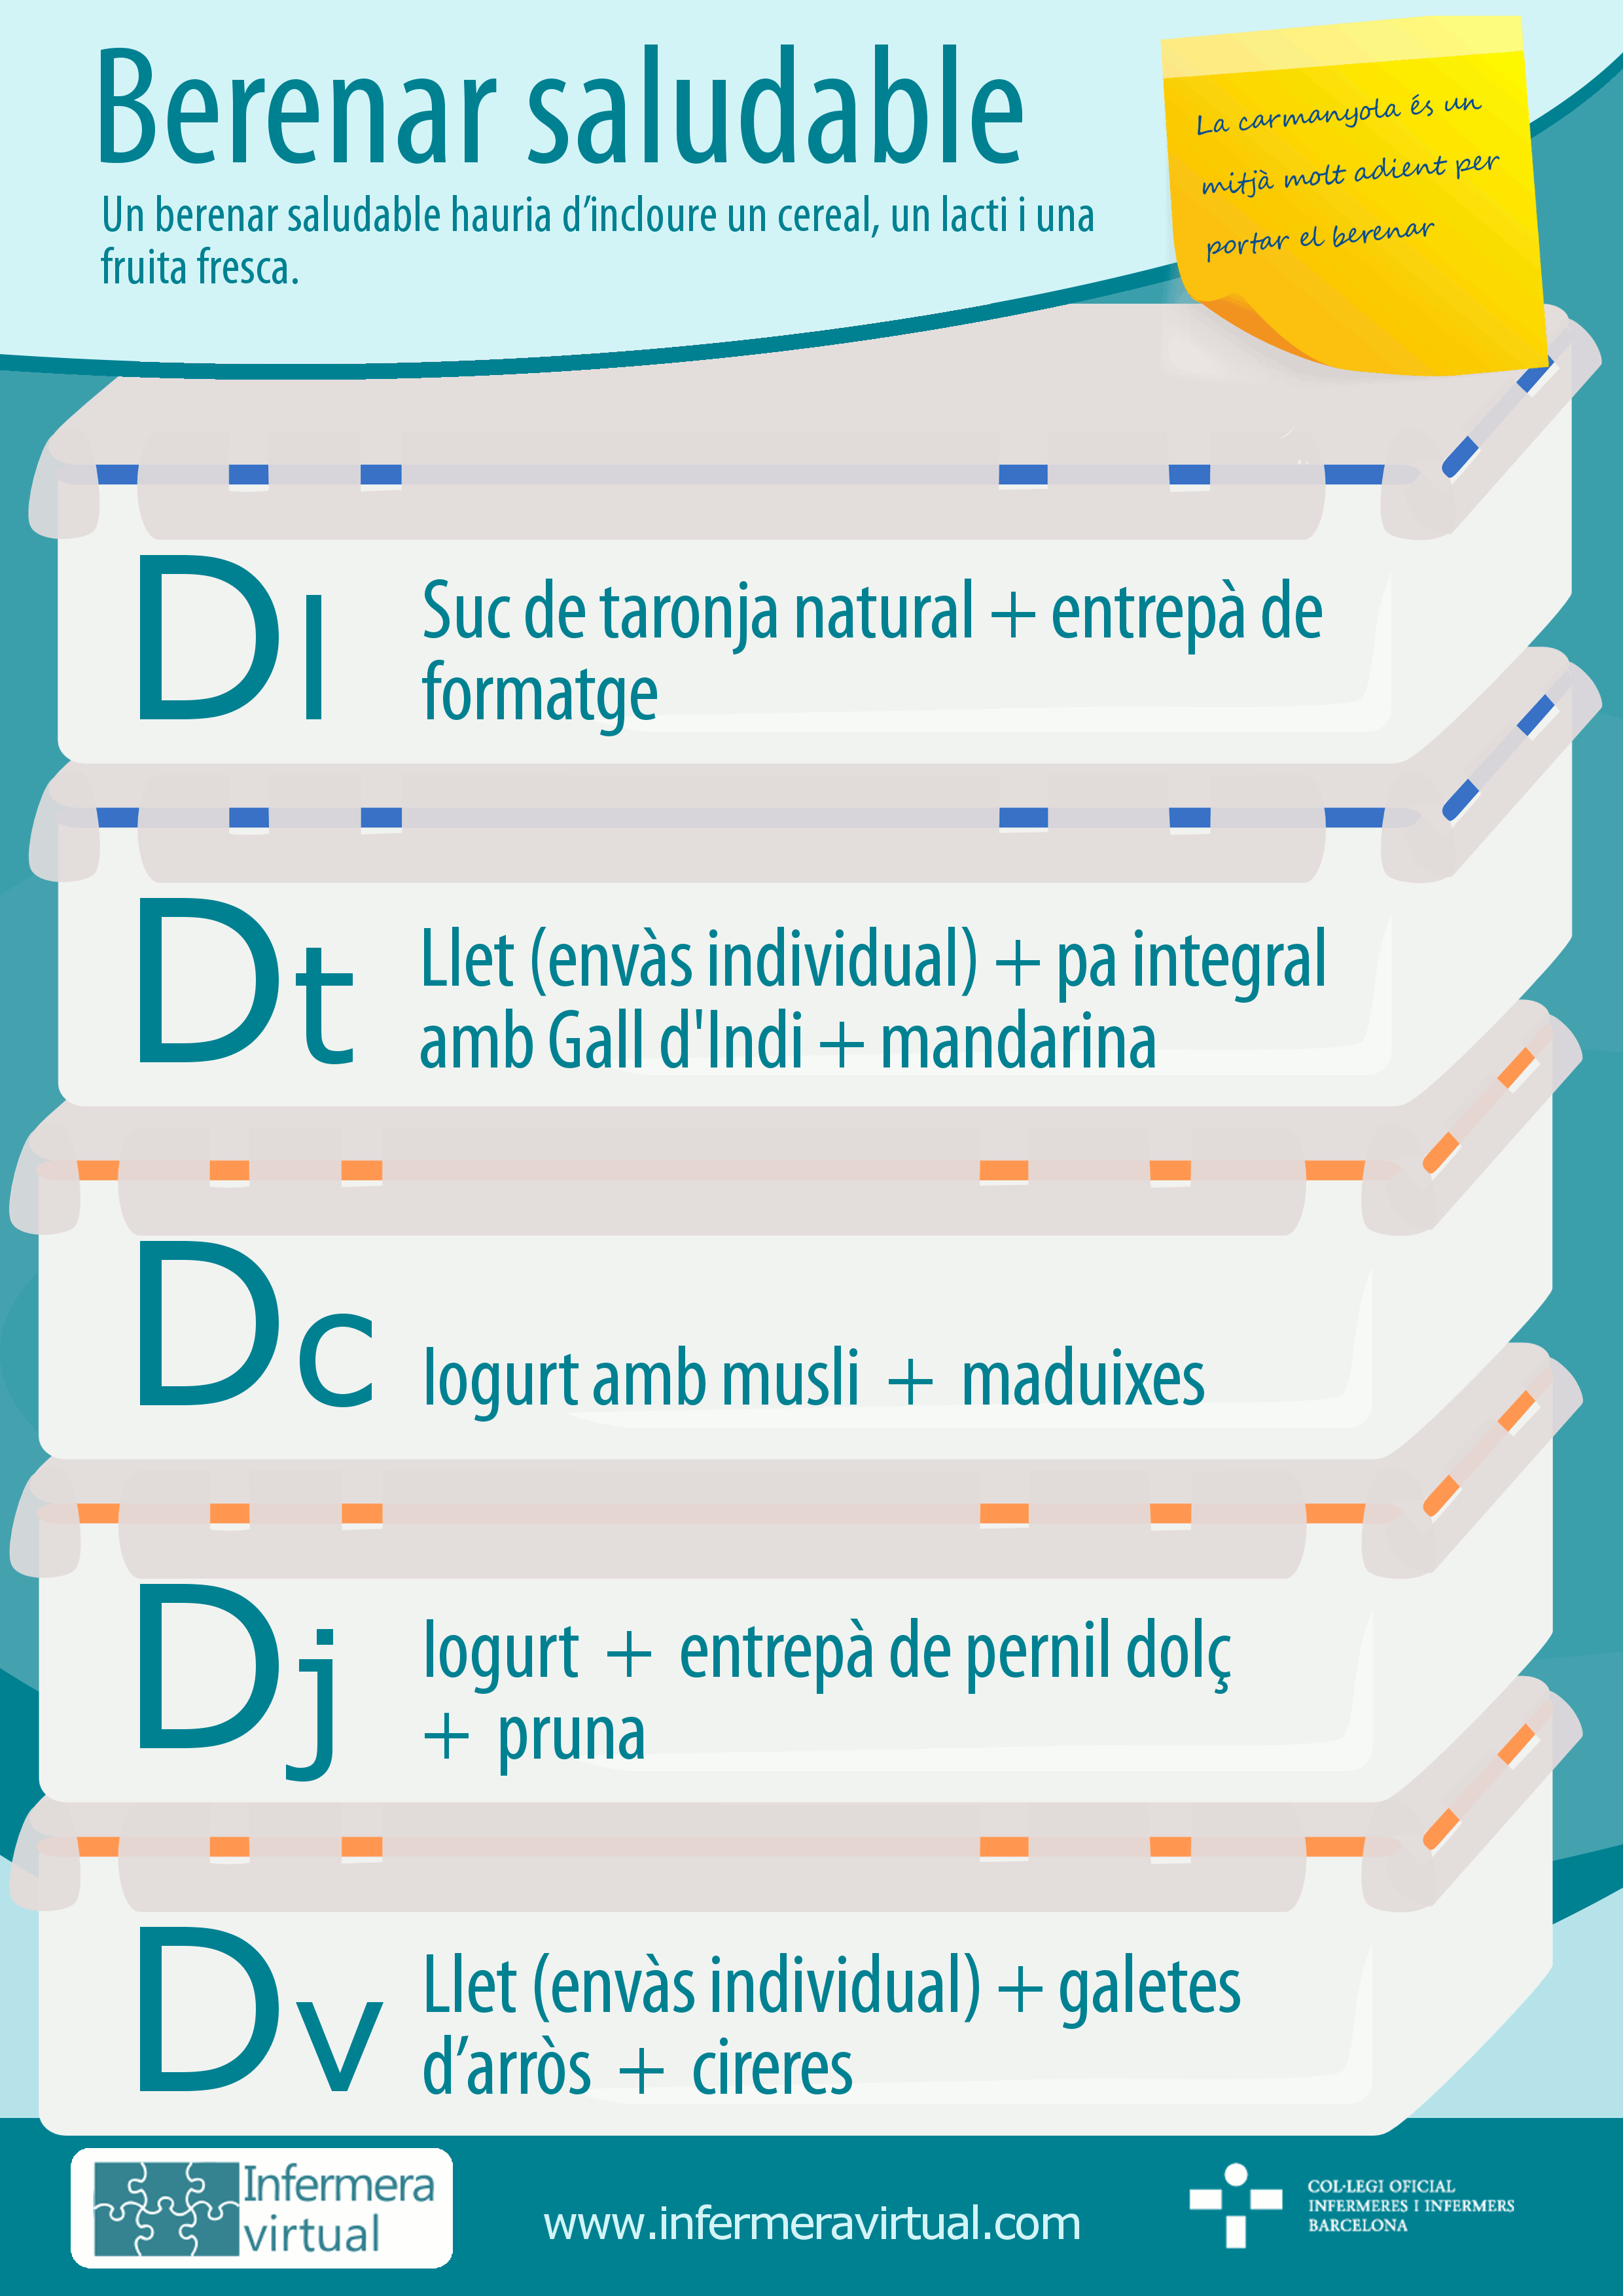 Infografia Berenar saludable